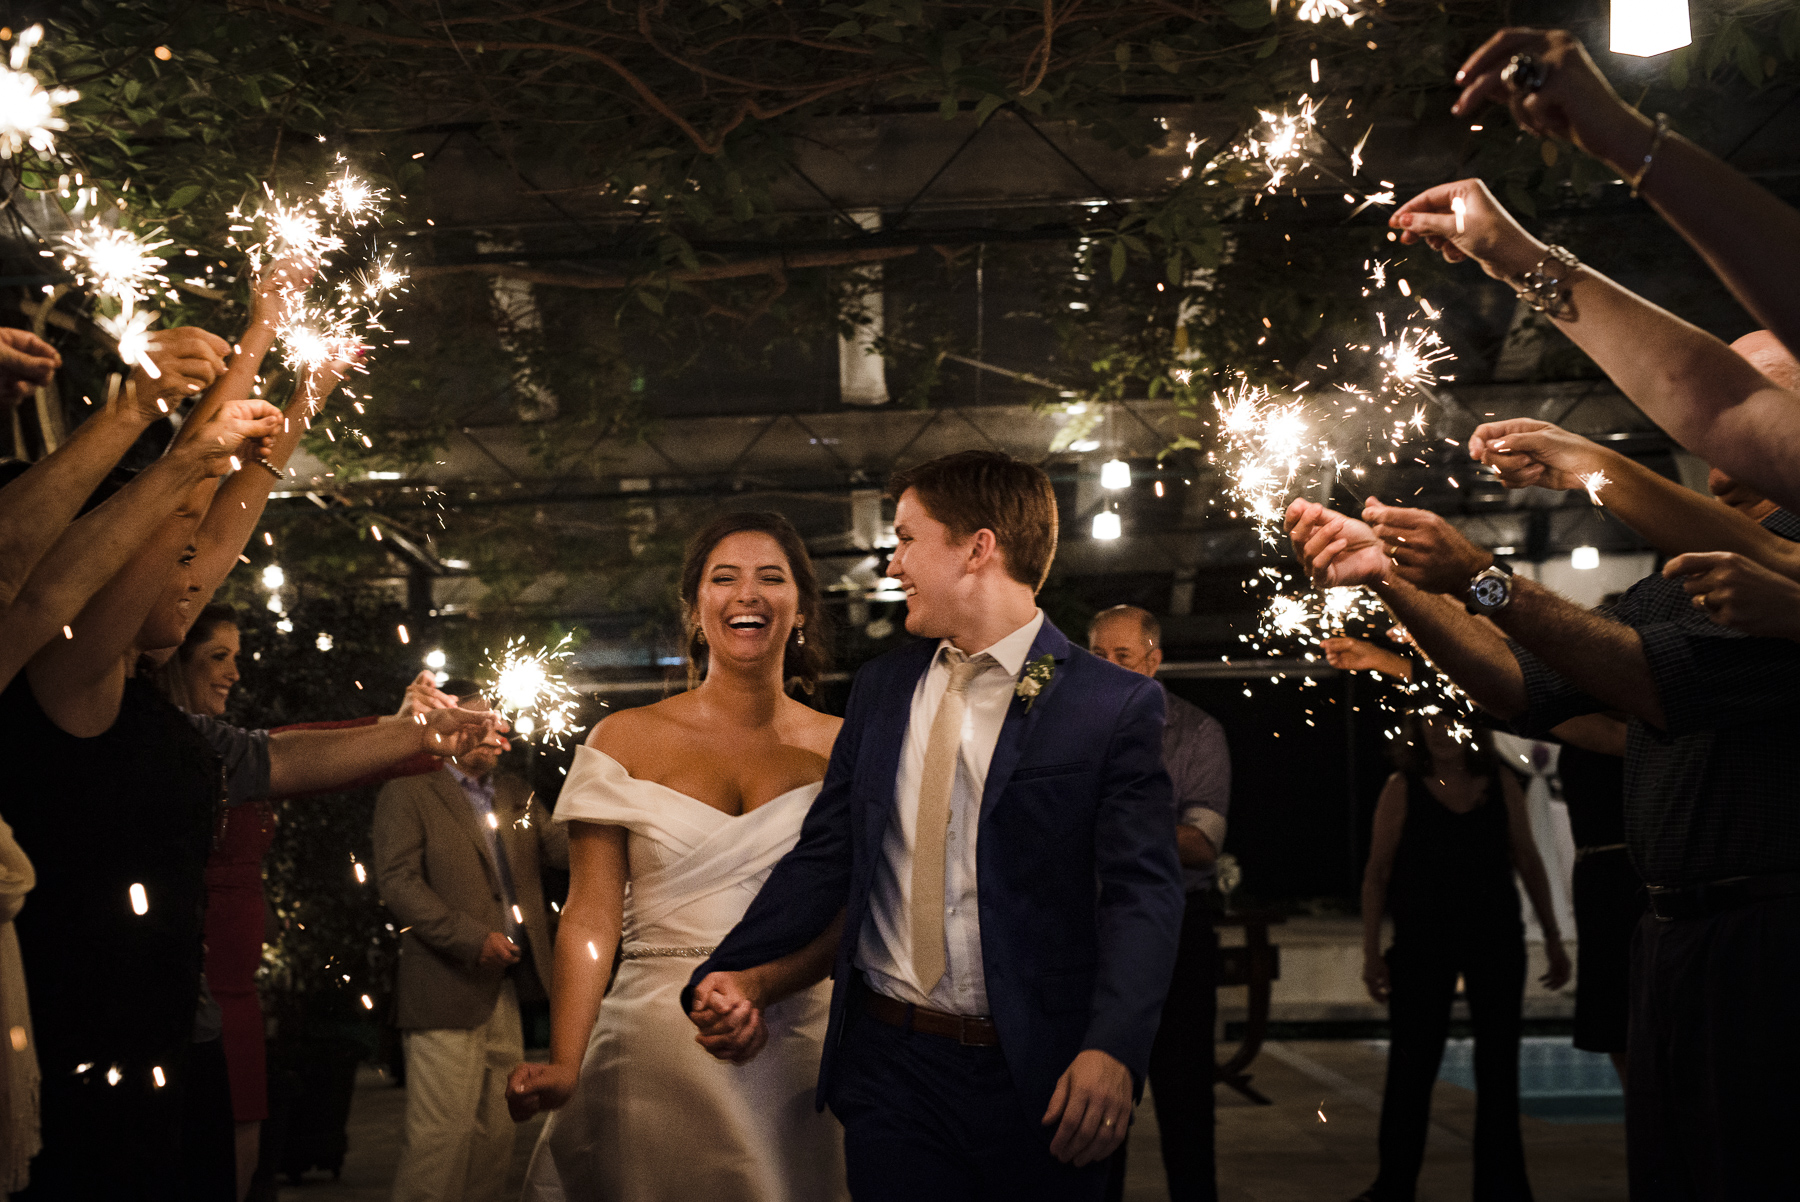 Wedding Venue Photos at Casa de Santa Teresa | The wedding guests use sparklers to light the path